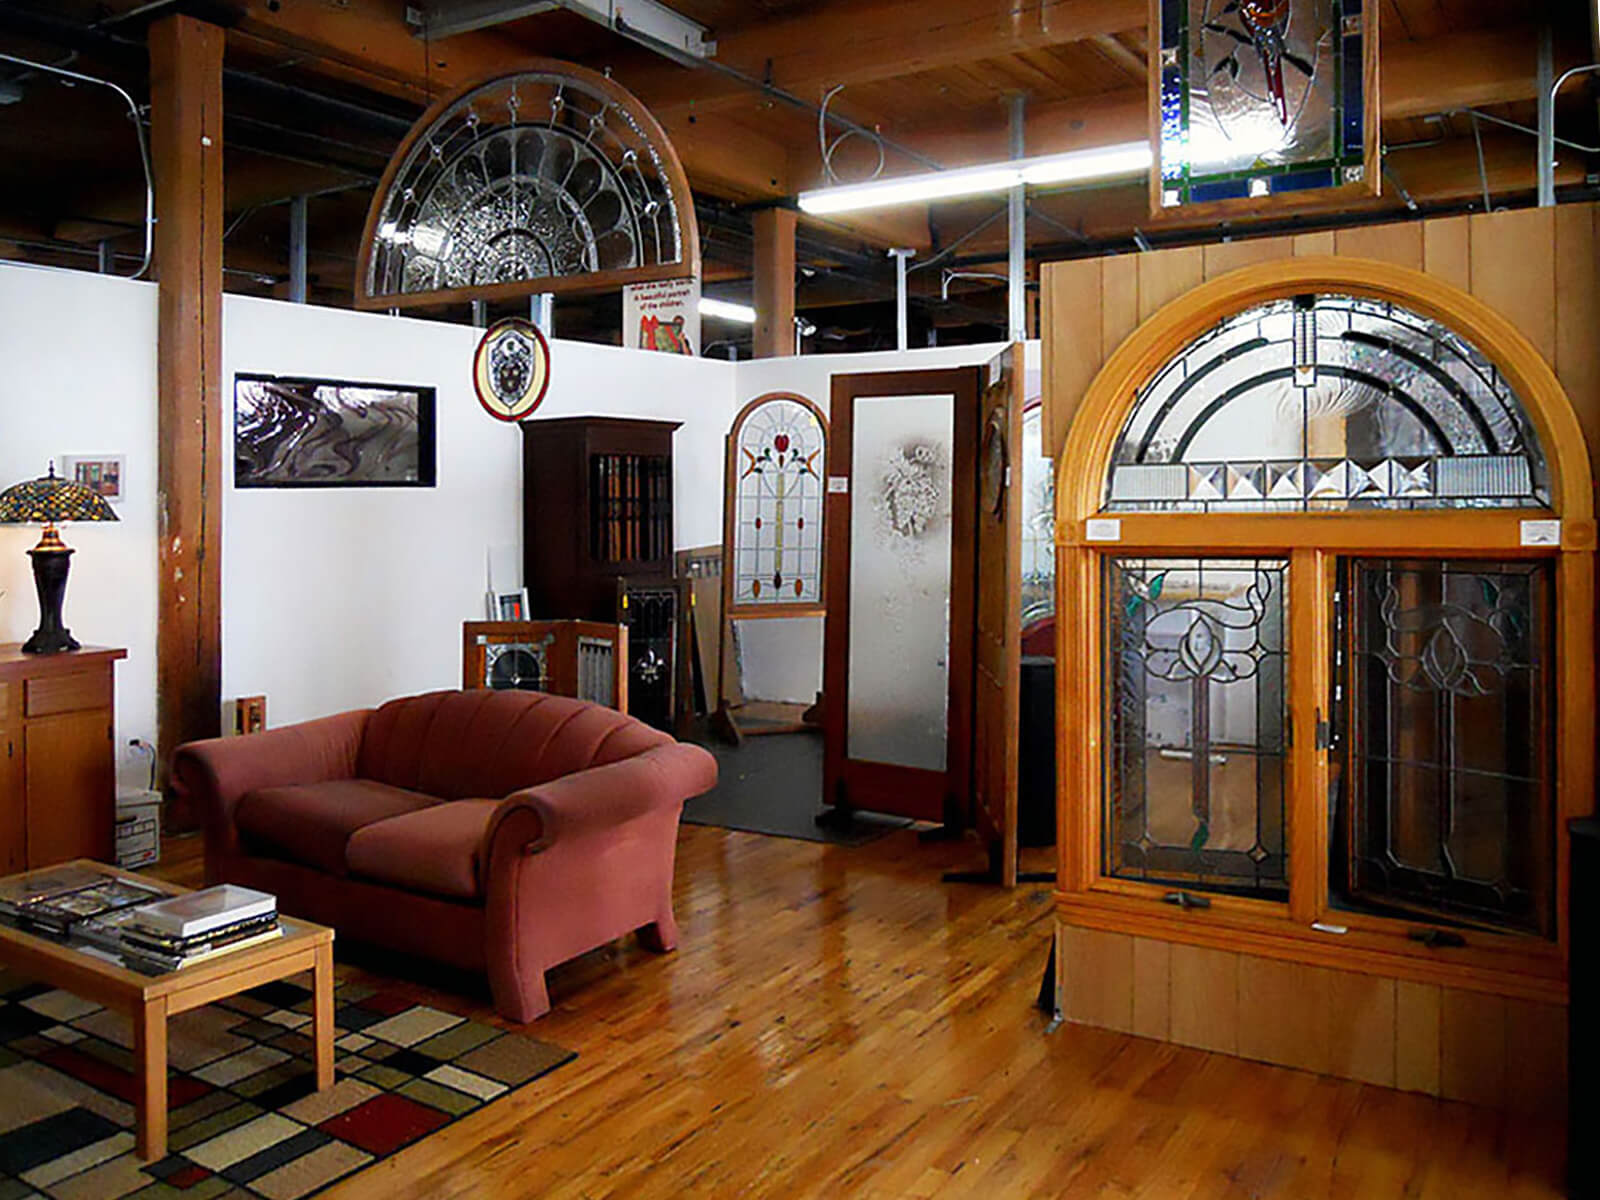 Pompei Stained Glass Studio Showroom - Western Avenue Studios Lowell, MA